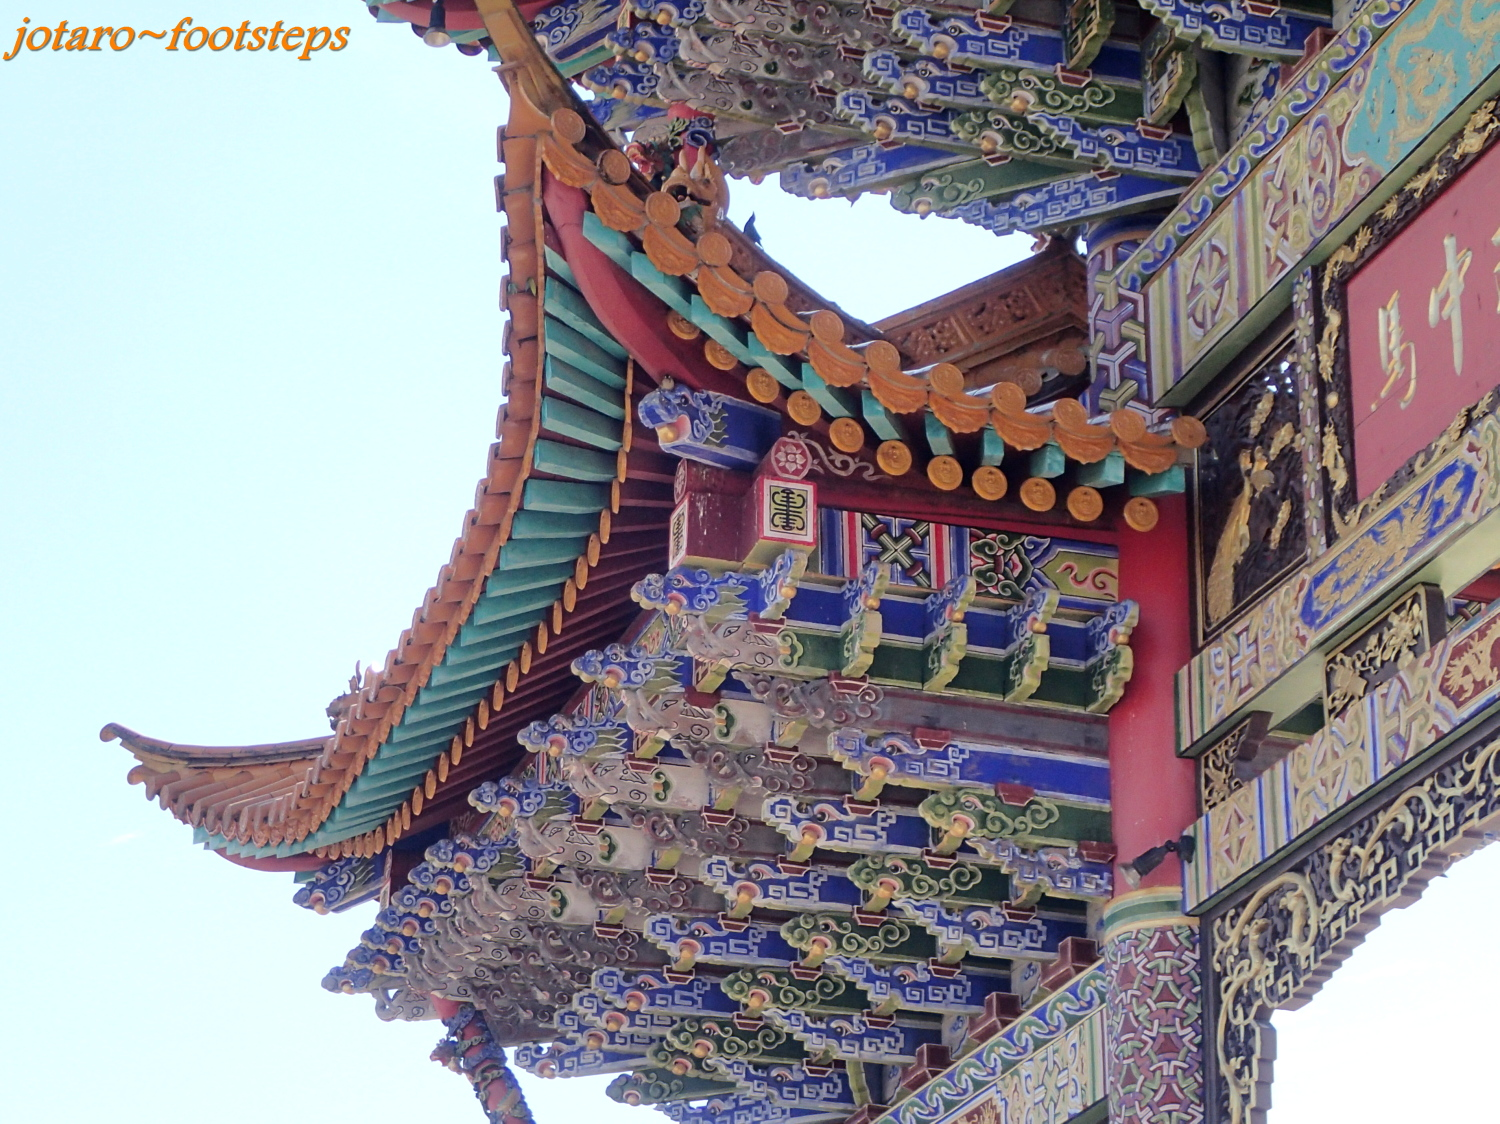 A Closer Look At The Roof Of This Side Entrance Gateway Show That It Is Actually Three Roofs Bottom Has An Impressive Chinese Architecture